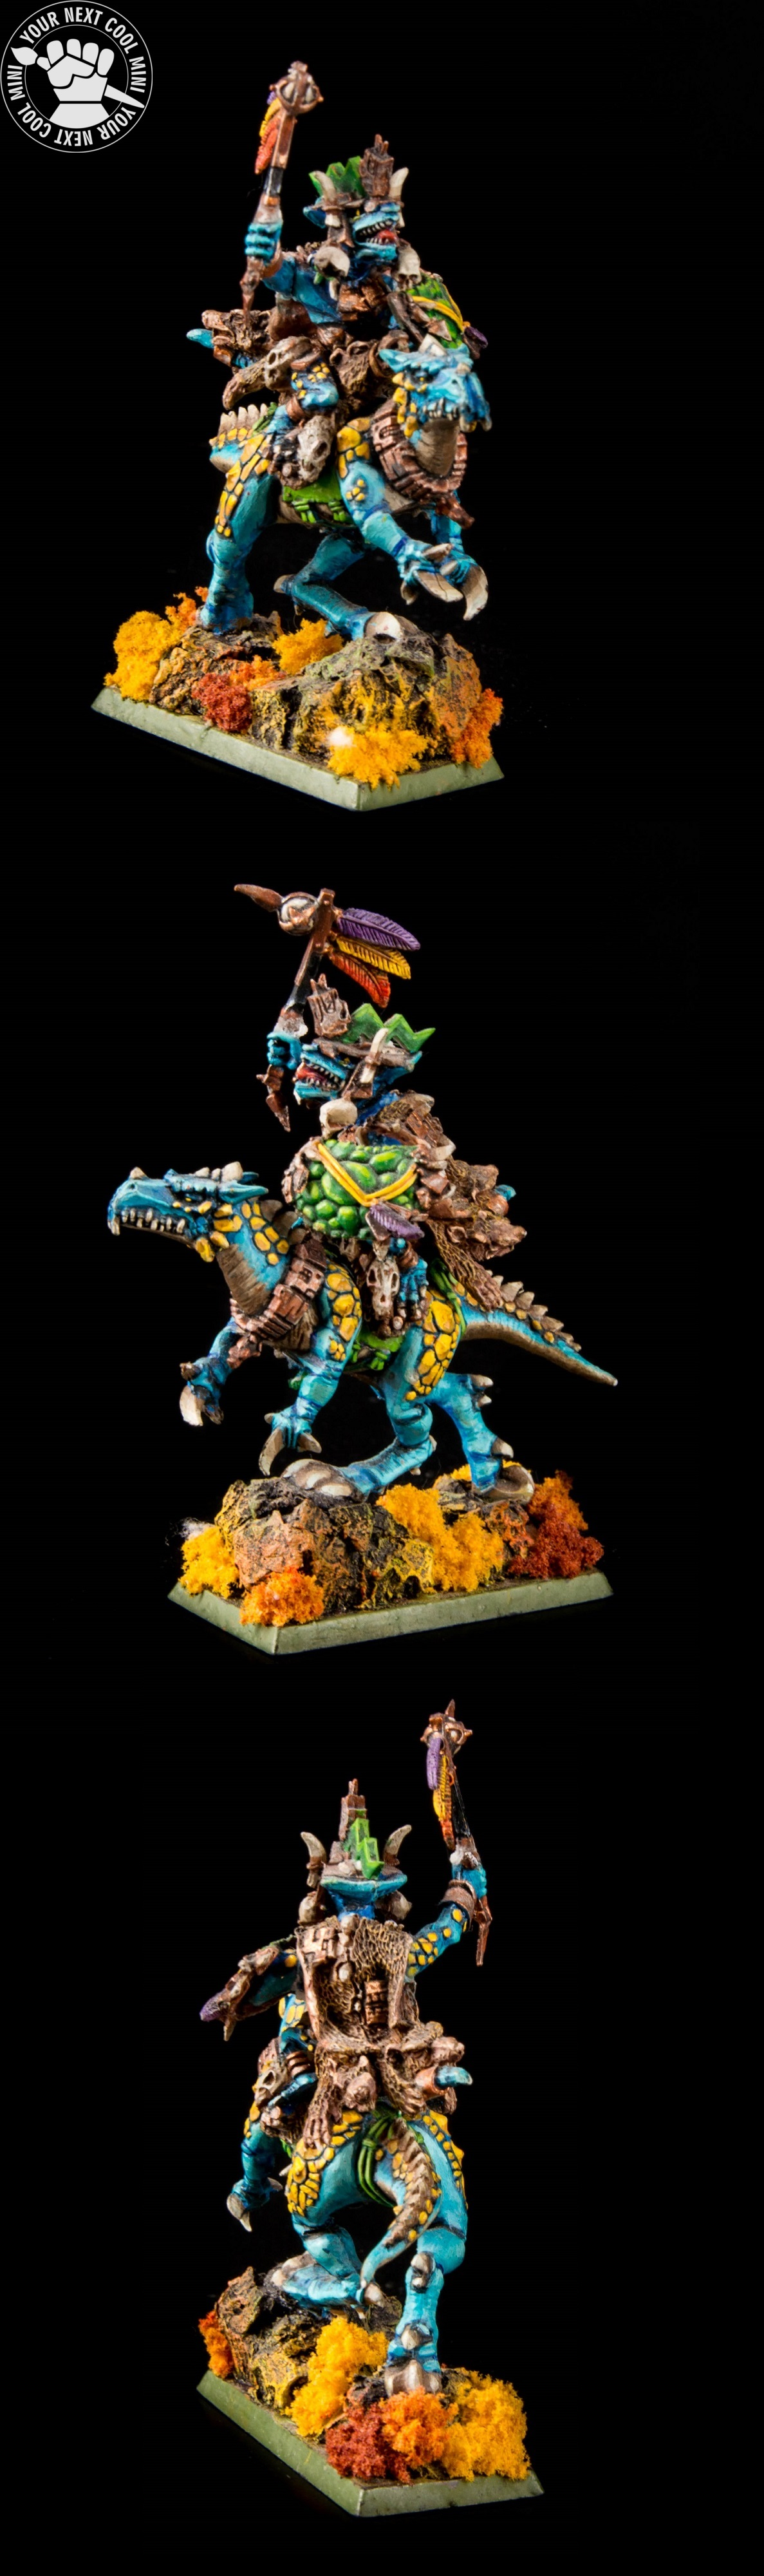 Warhammer AoS/FB, Lizardmen - Saurus Oldblood on Cold One